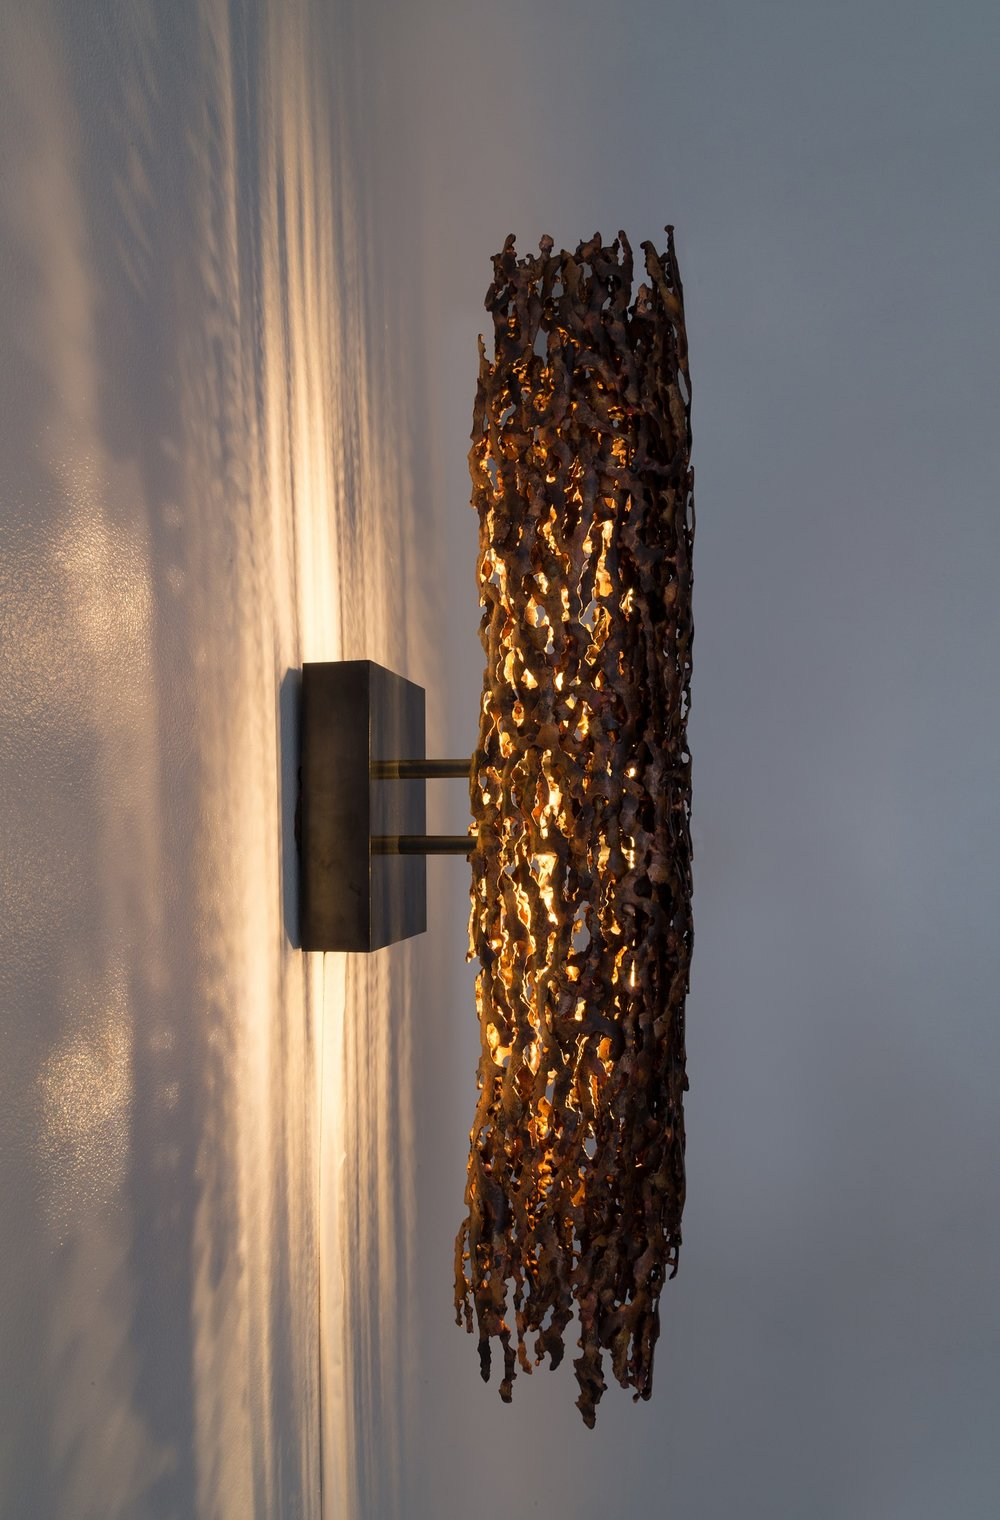 - The burnt copper form light makes a bold statement. The body of the light is hand assembled from heat-formed copper pieces into an intense compact shape. The meandering edges and varying thickness of the individual pieces contribute to a unique and engaging artistic form. The light casts dramatic shadows onto the wall creating a beautiful and varied shadows. The illumination from within the piece highlights the beautiful variation in color and texture of the copper. The raw color from the heat coloration lends a rich warmth to the piece. The copper body is supported by a minimal blackened steel armature.LED light source Narrow - 28